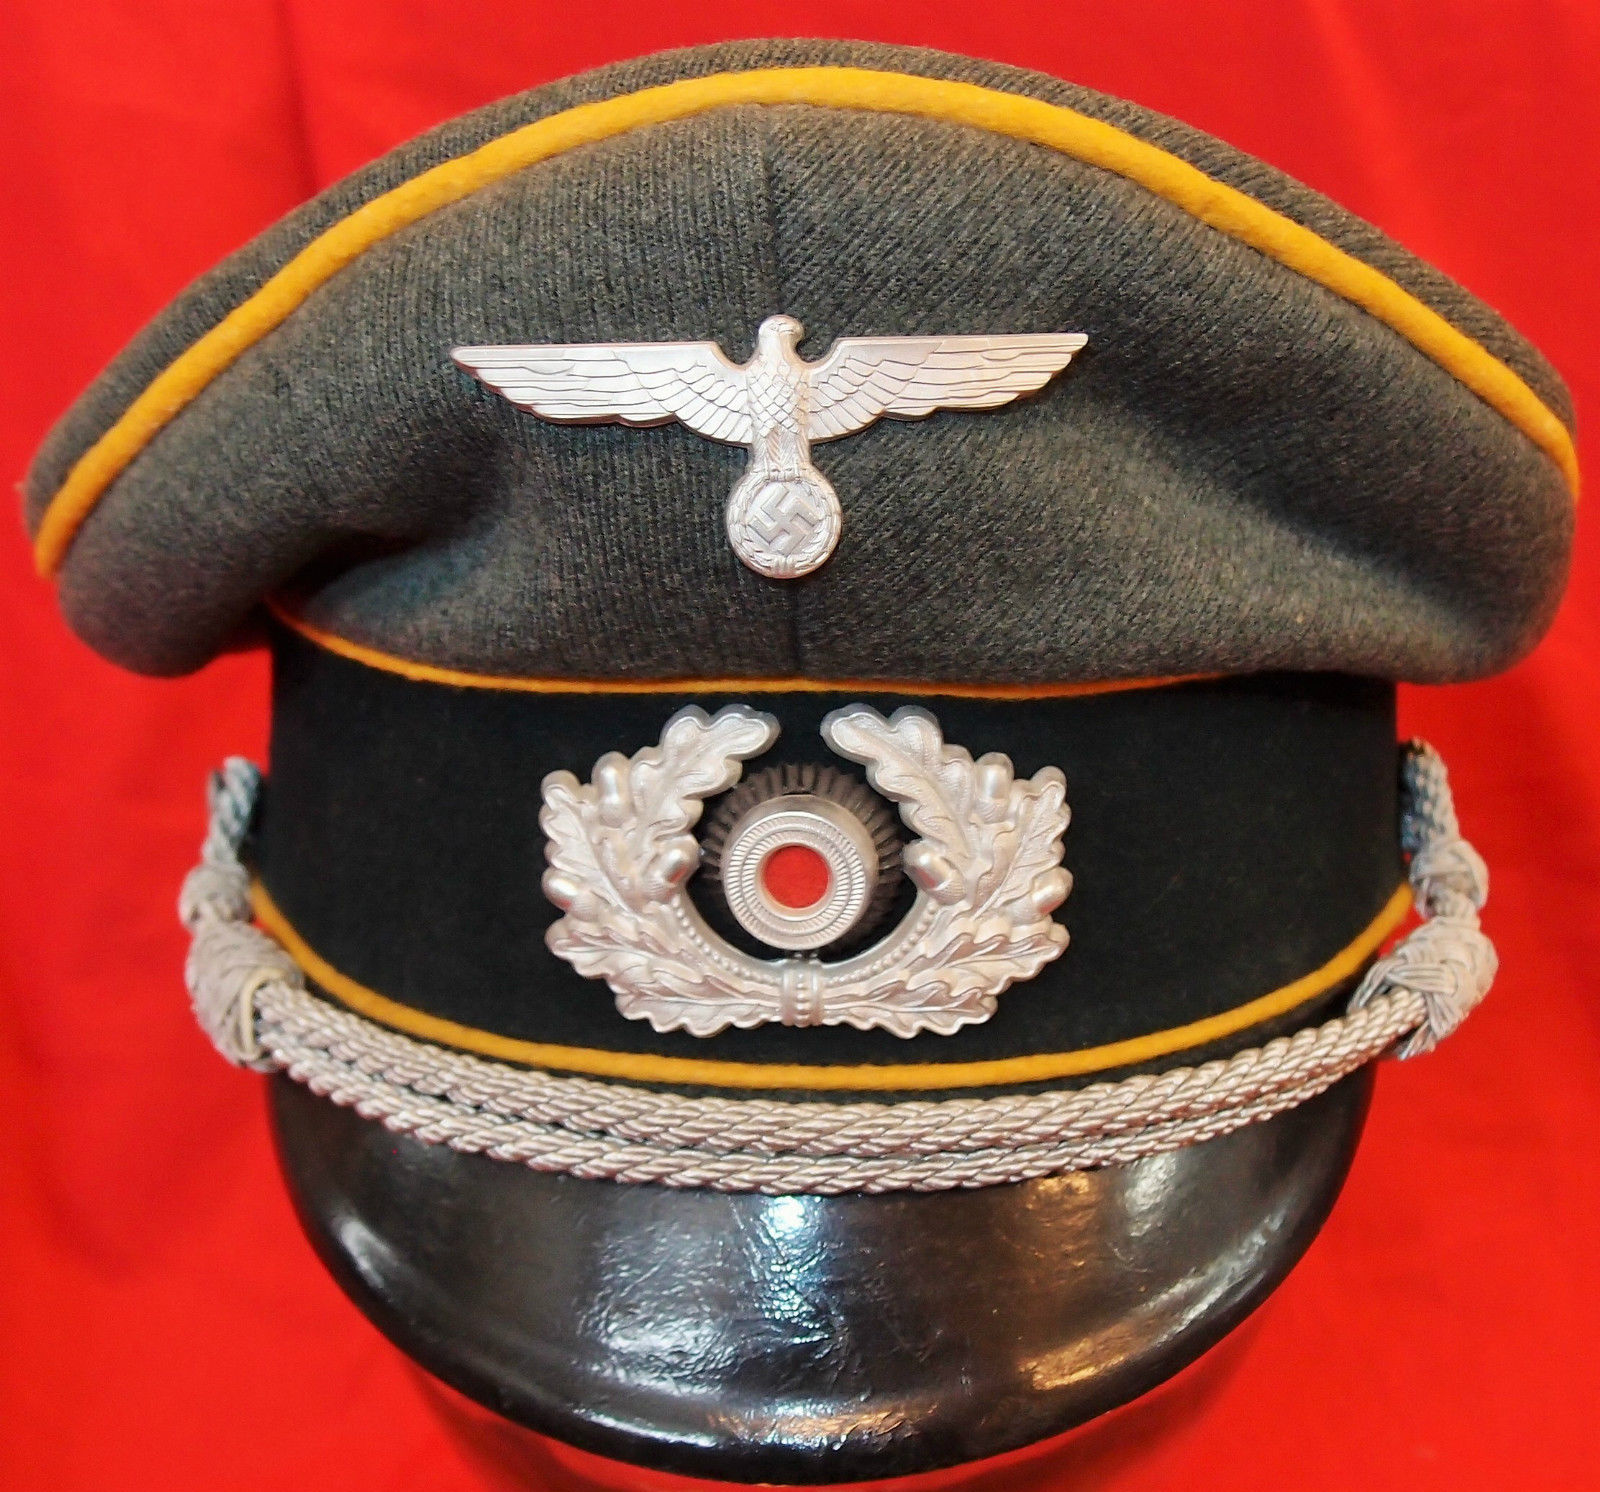 bedf338e05f WW2 NAZI GERMANY ARMY CAVALRY OFFICER PEAKED CAP HAT – JB Military Antiques